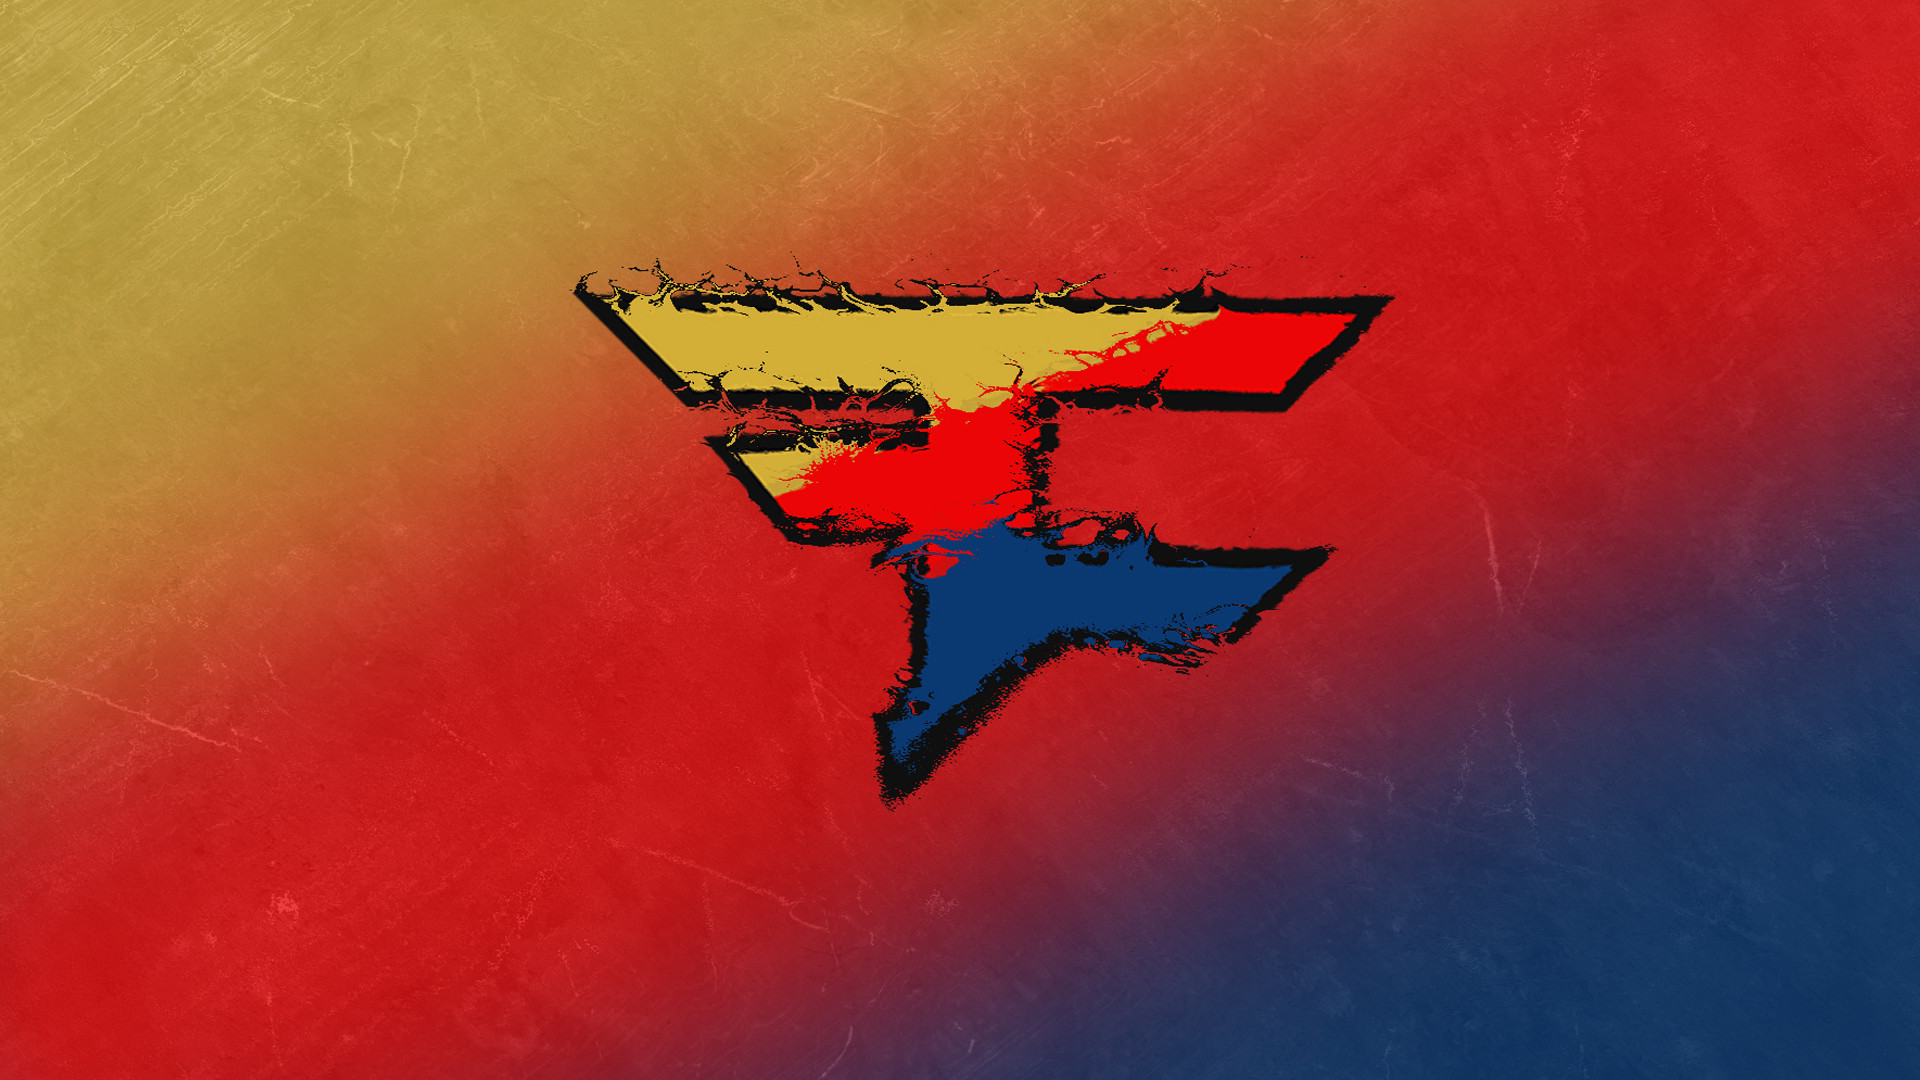 Faze clan wallpaper hd 91 images for Wallpaper to go